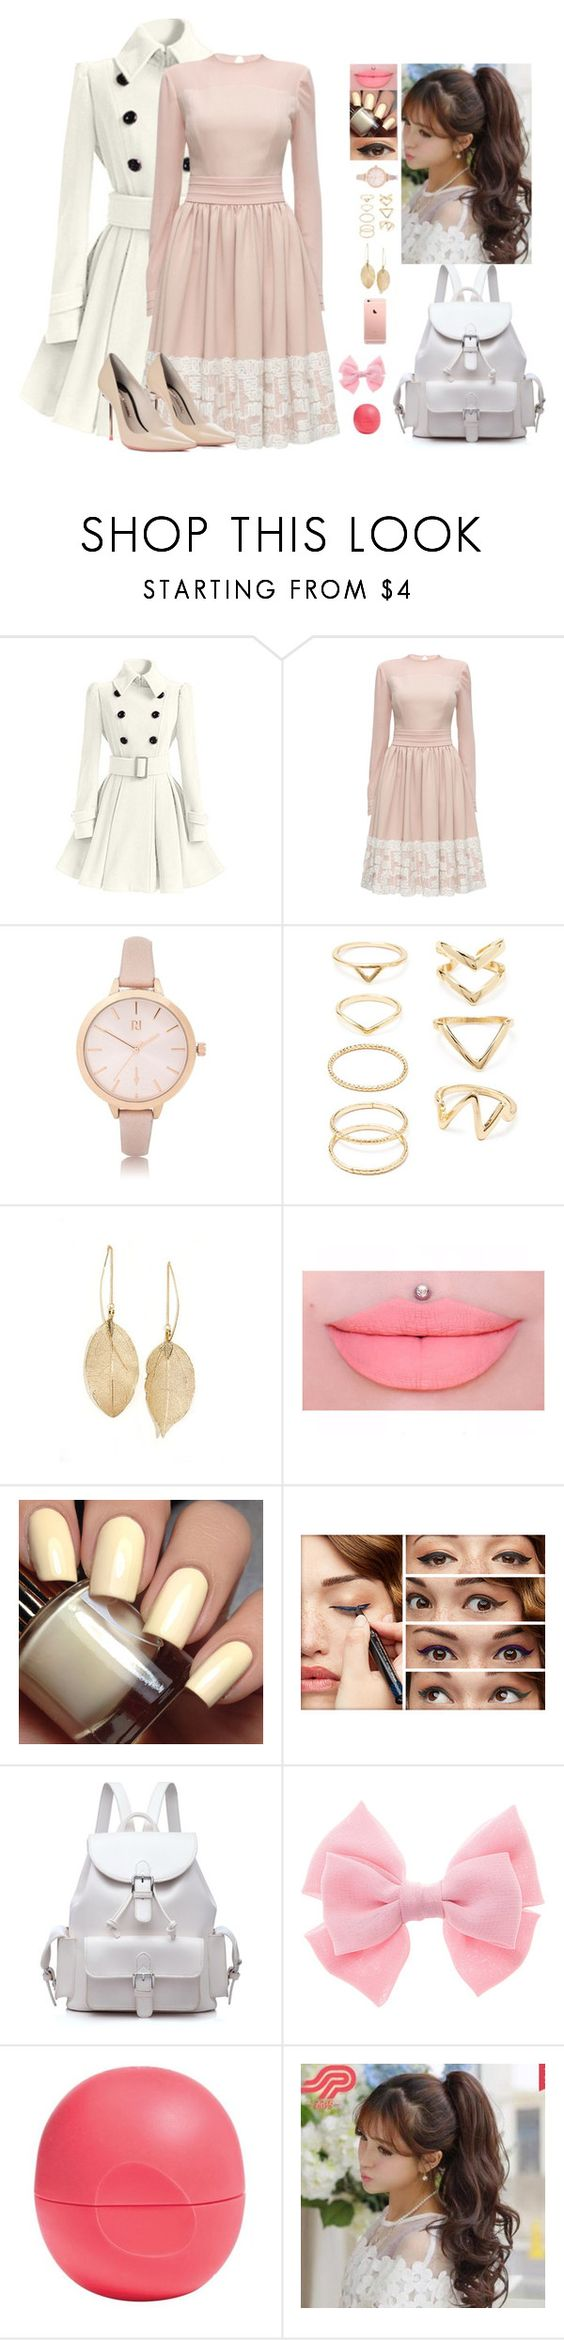 Untitled #114 by killerfashionqueen on Polyvore featuring Lattori, Sophia Webster, Forever 21, River Island, Lulu*s, Pin Show, Benefit and Eos